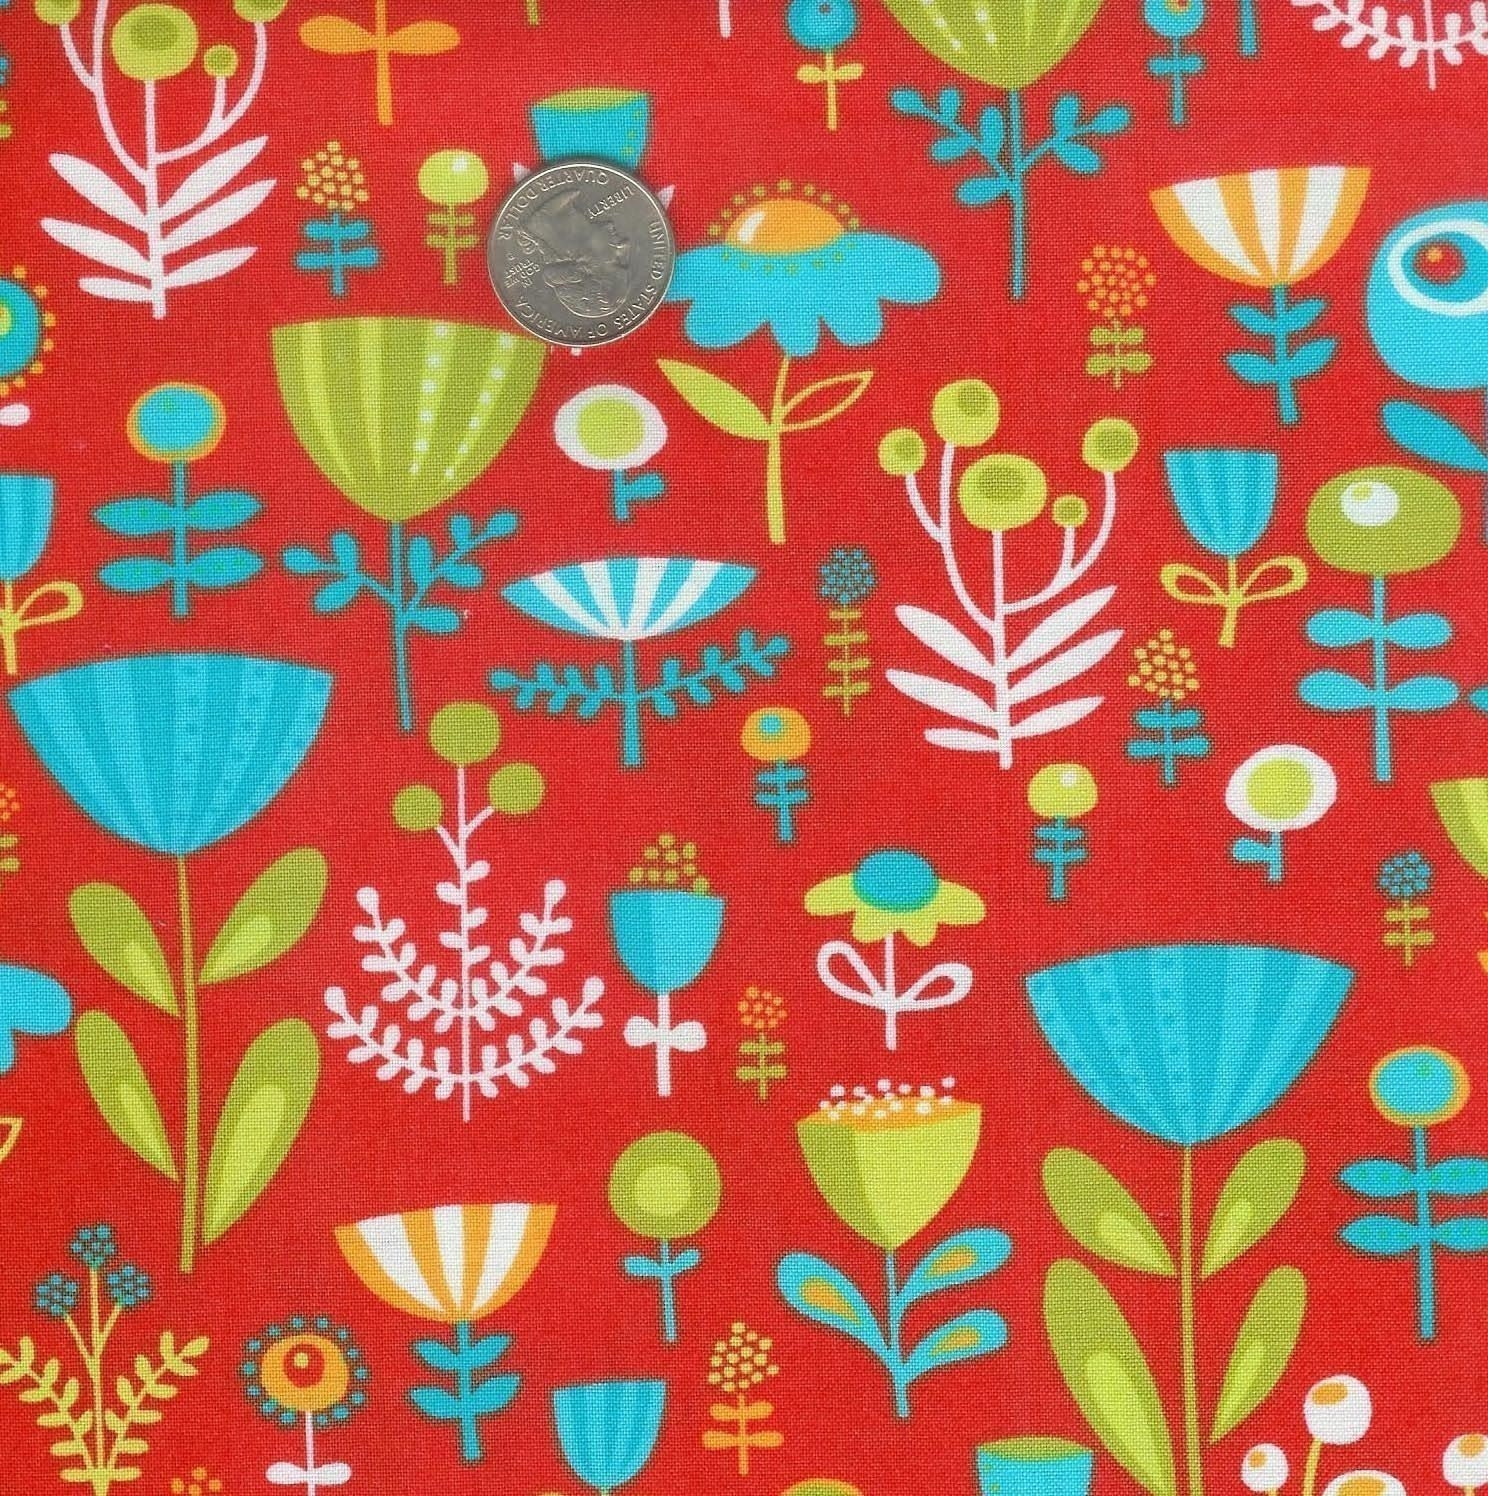 Fat quarter - Erin McMorris Park Slope Poppy Dot Floral in Orange cotton quilt fabric - retired